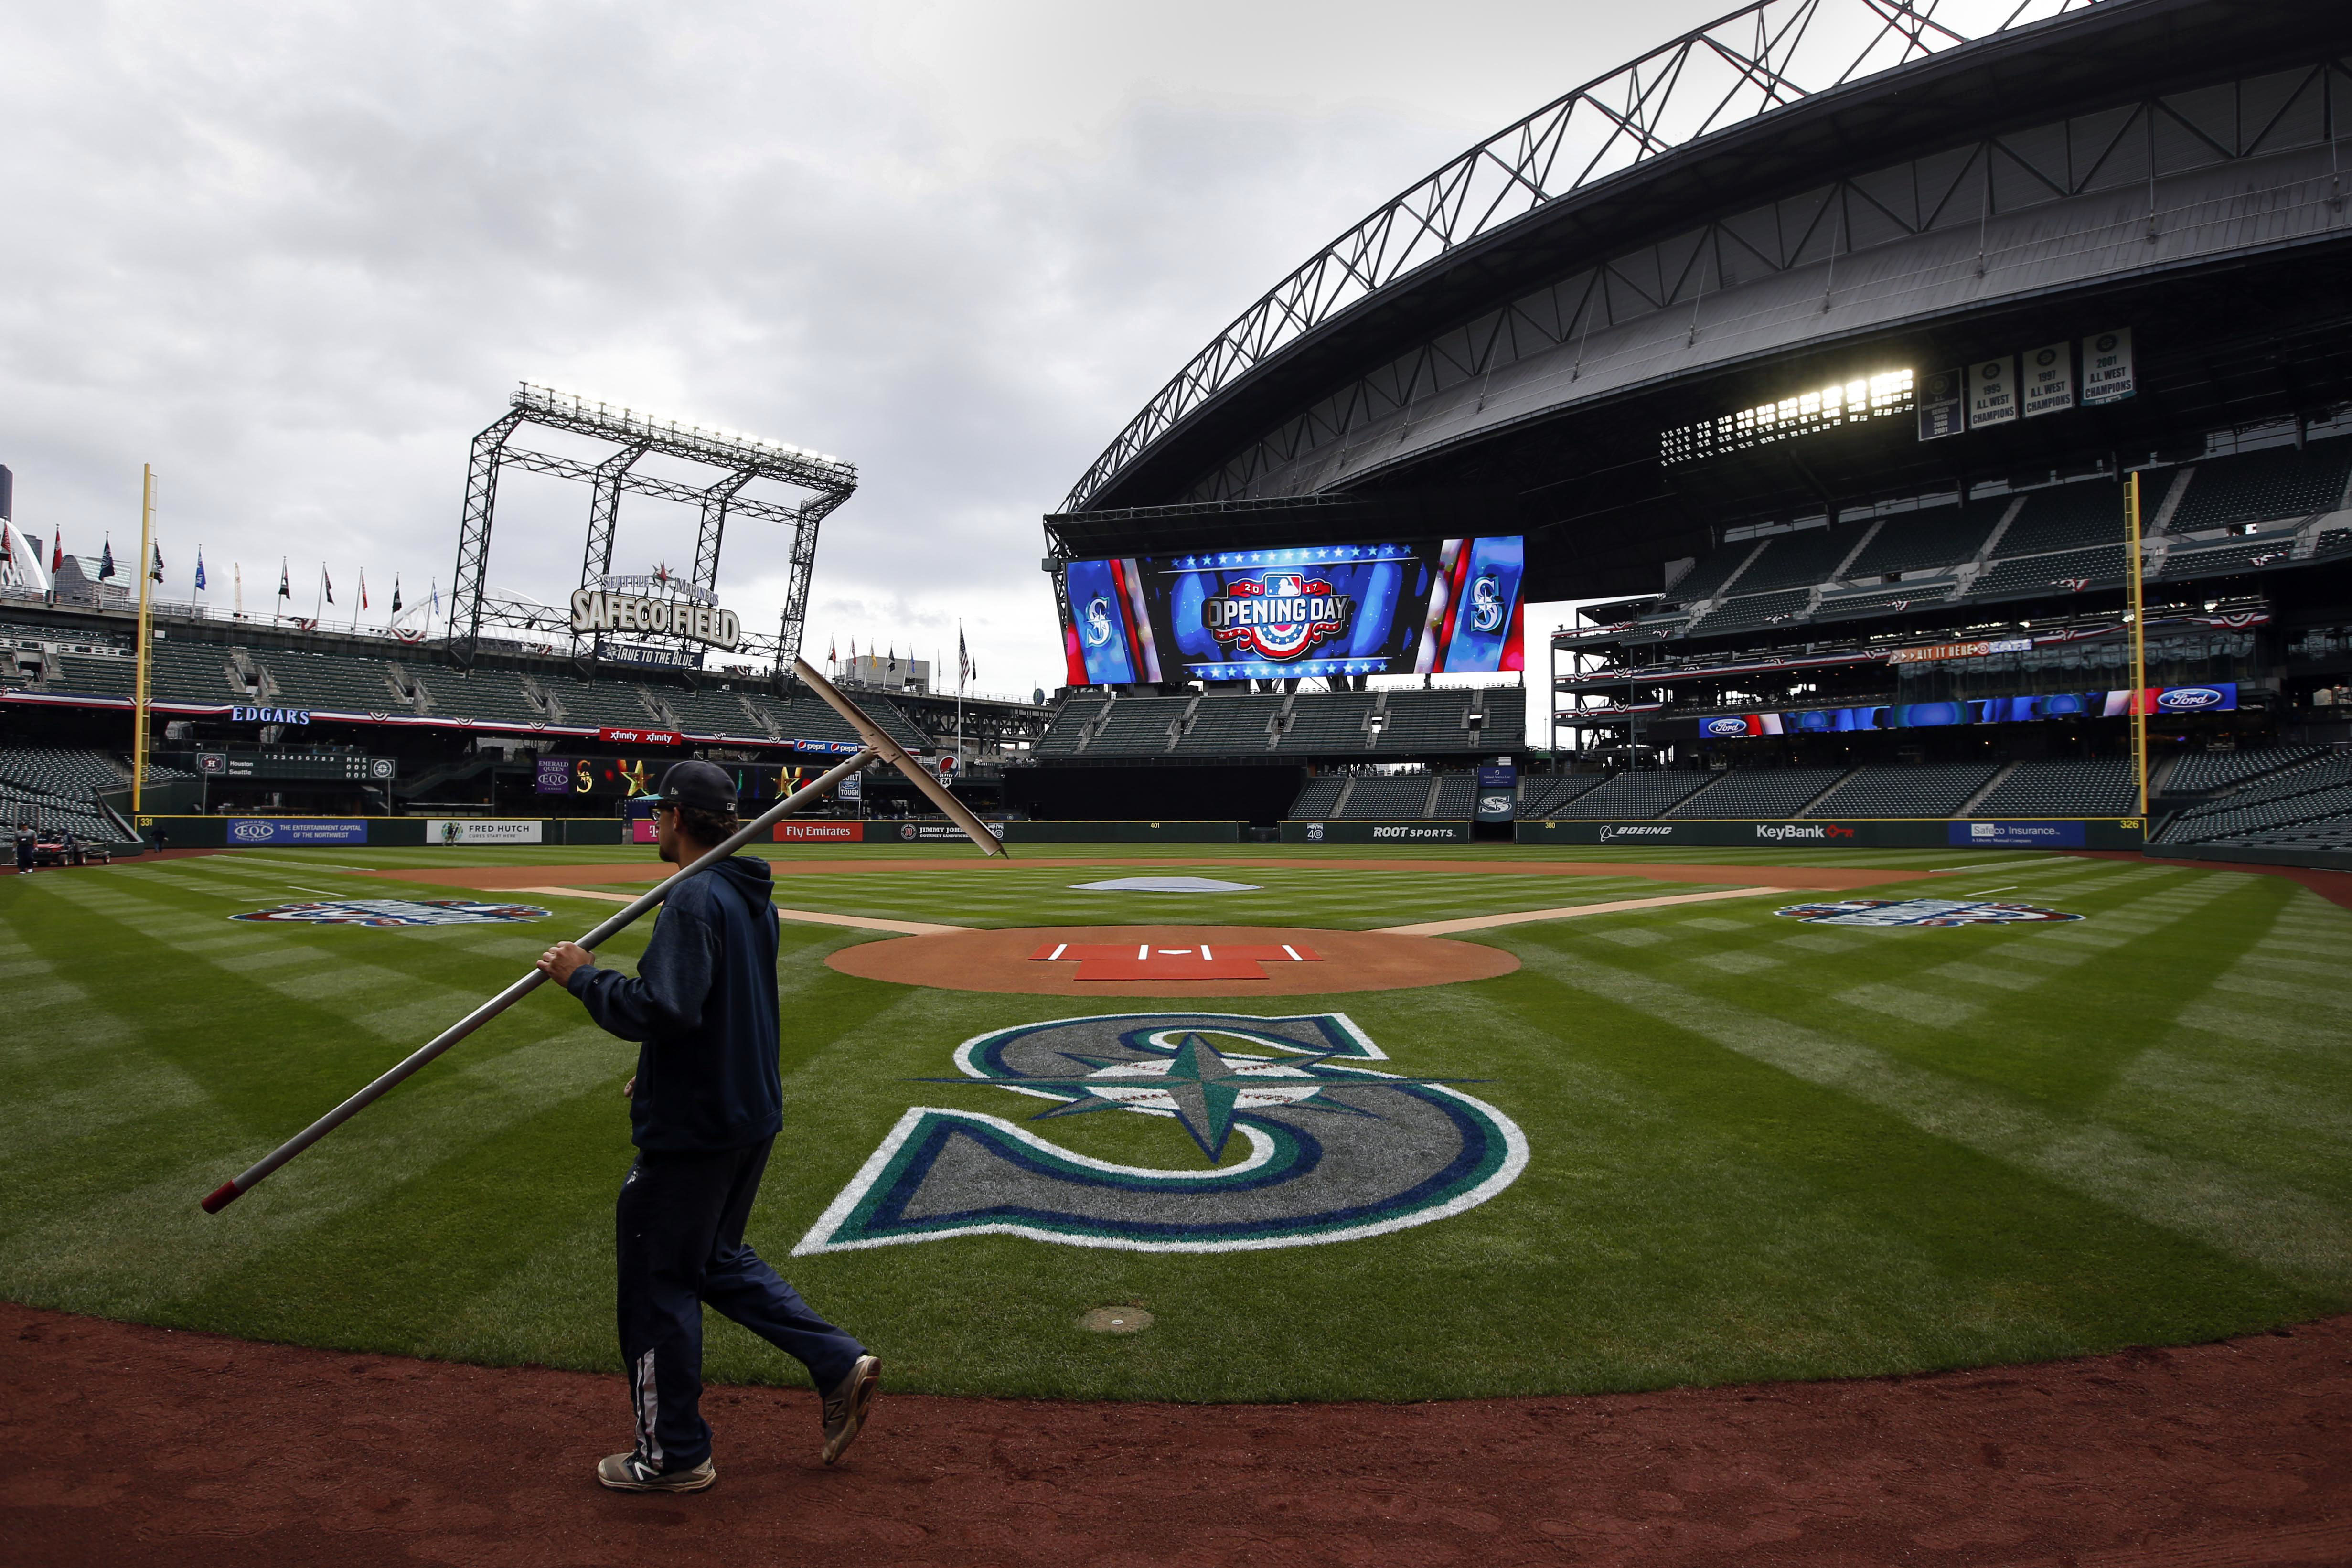 10004819-mlb-houston-astros-at-seattle-mariners